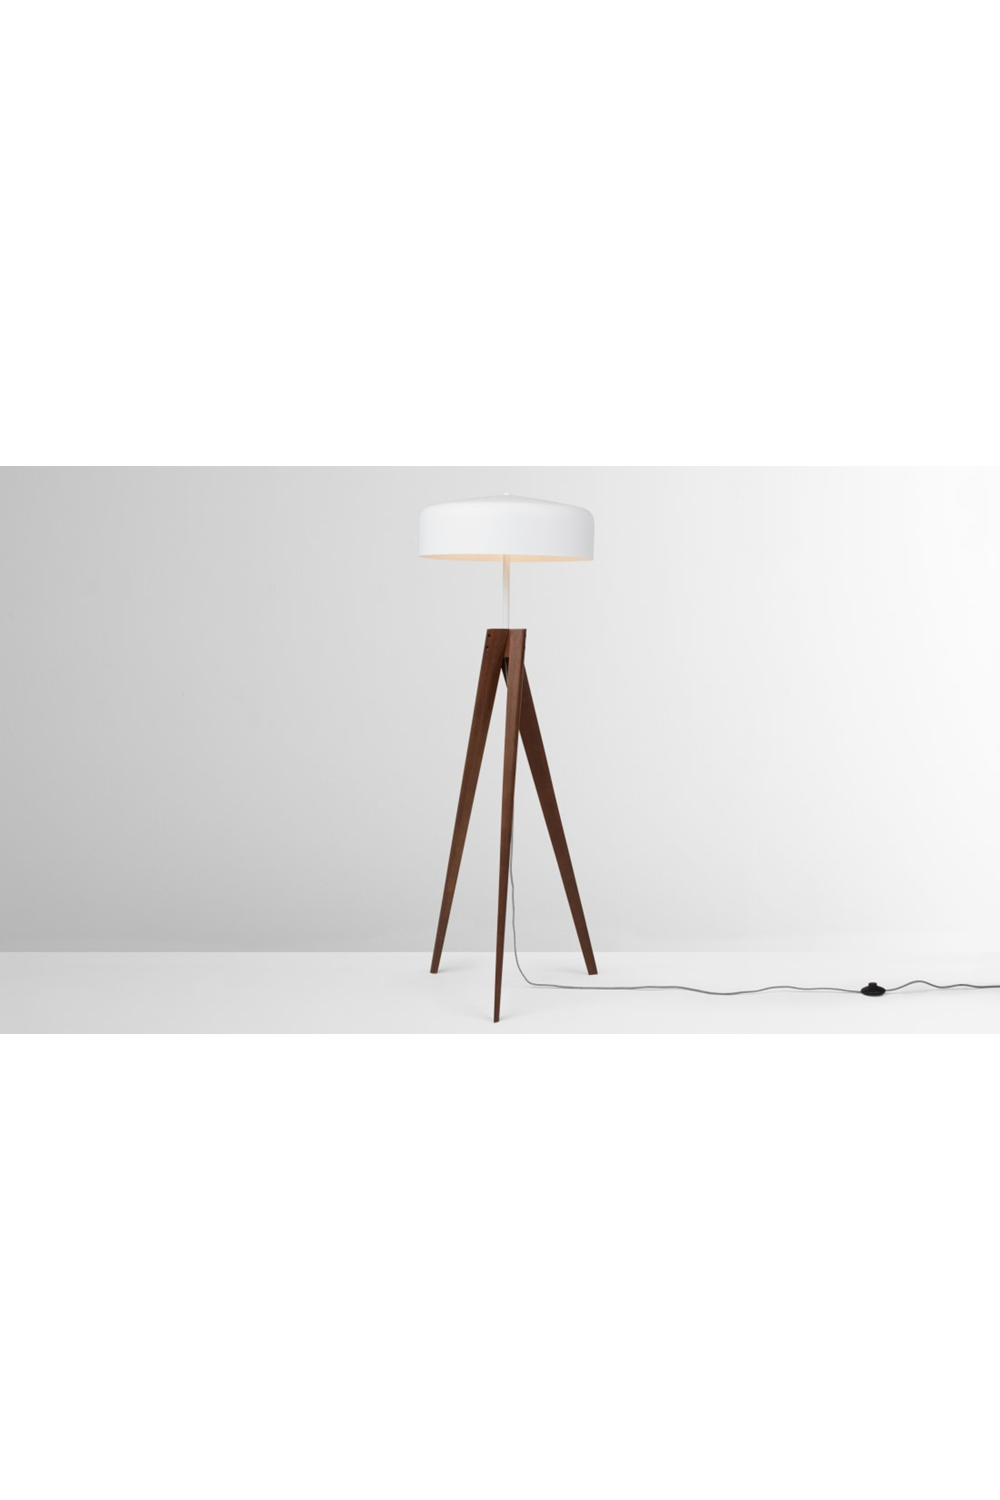 Madison Tripod Stehlampe Dunkles Holz Und Weiss White Floor Lamp